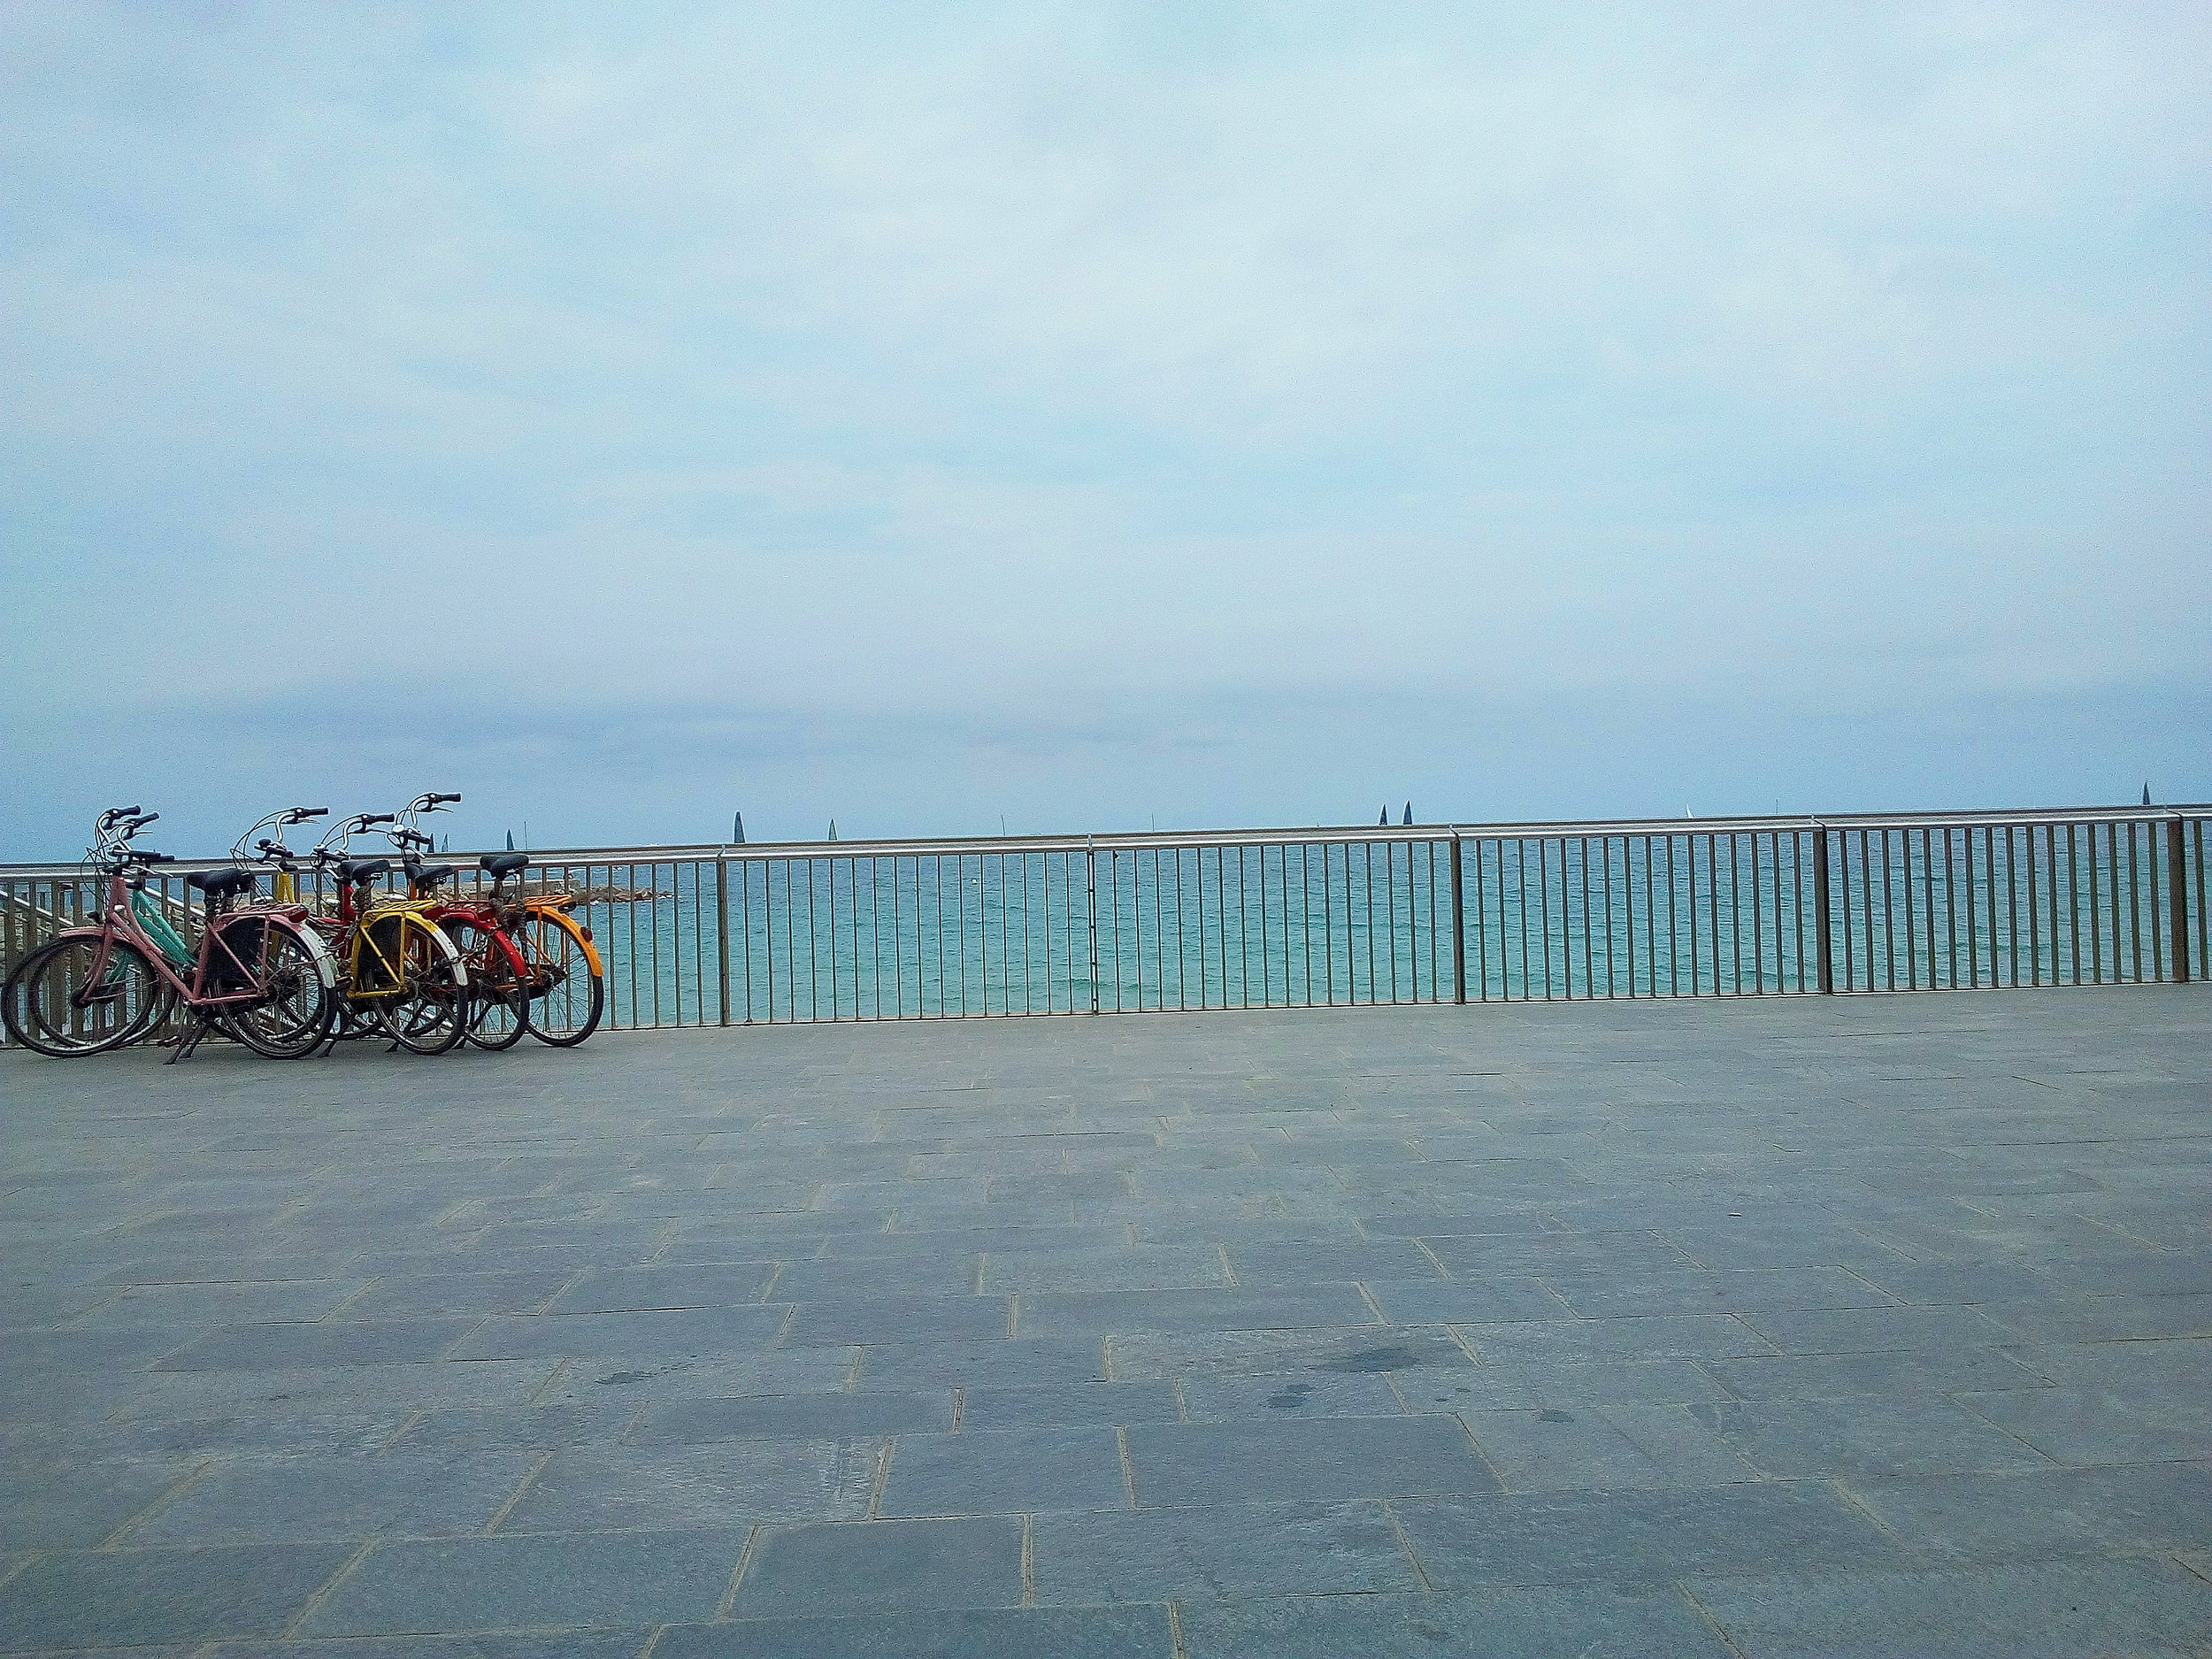 bicycles, the ocean, graphical lines #barceloneta